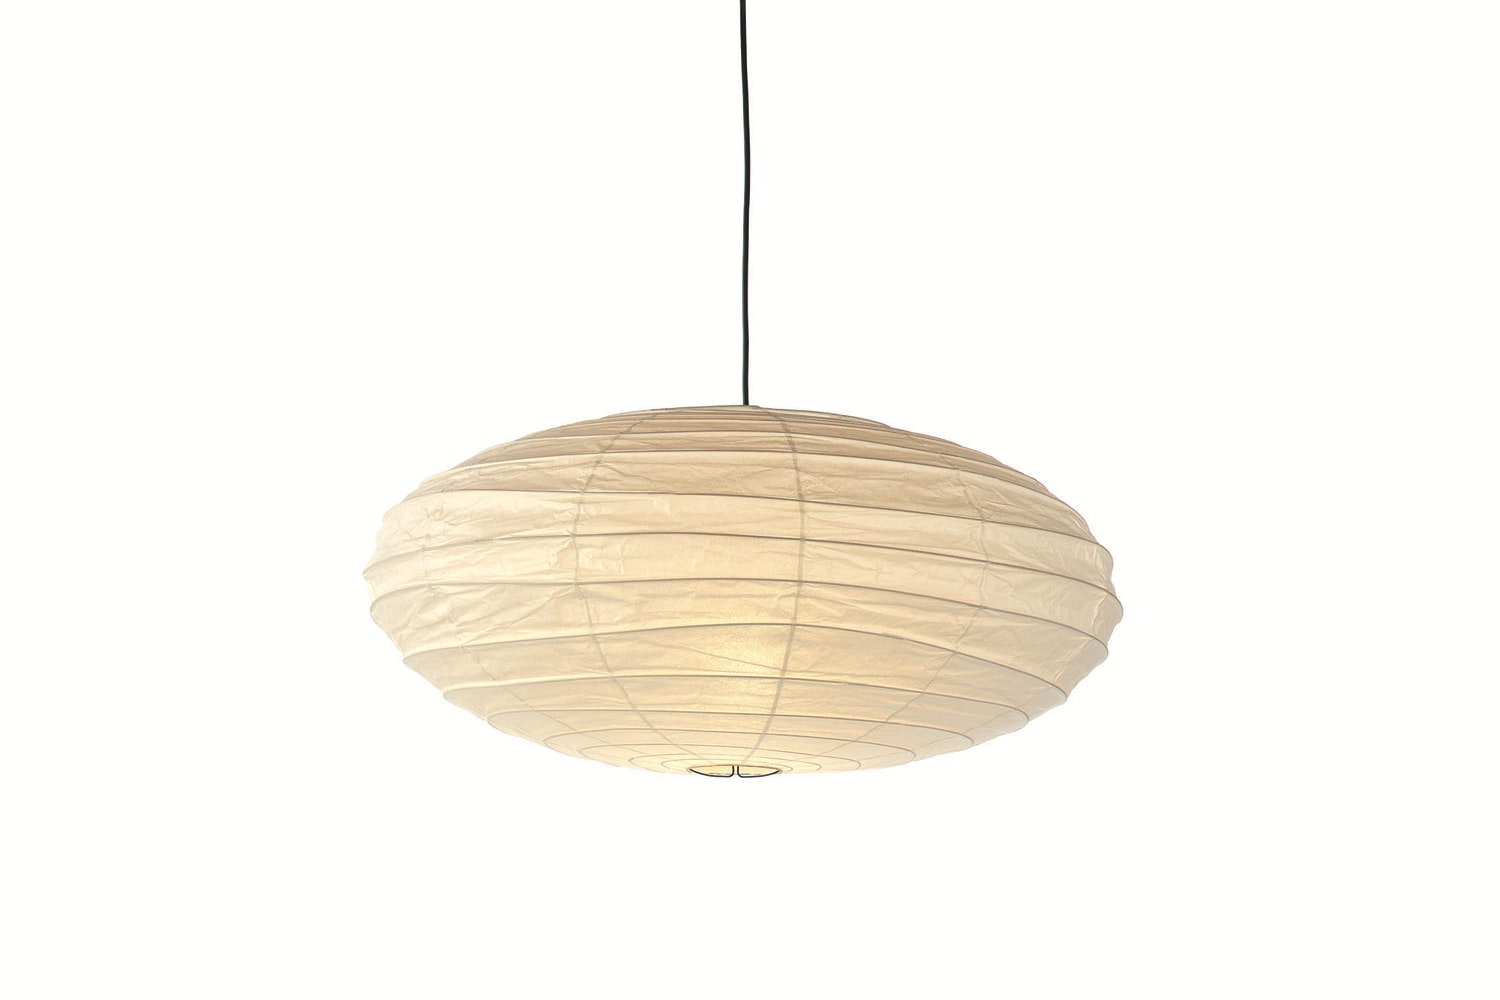 Akari 50EN Suspension Lamp by Isamu Noguchi for Vitra